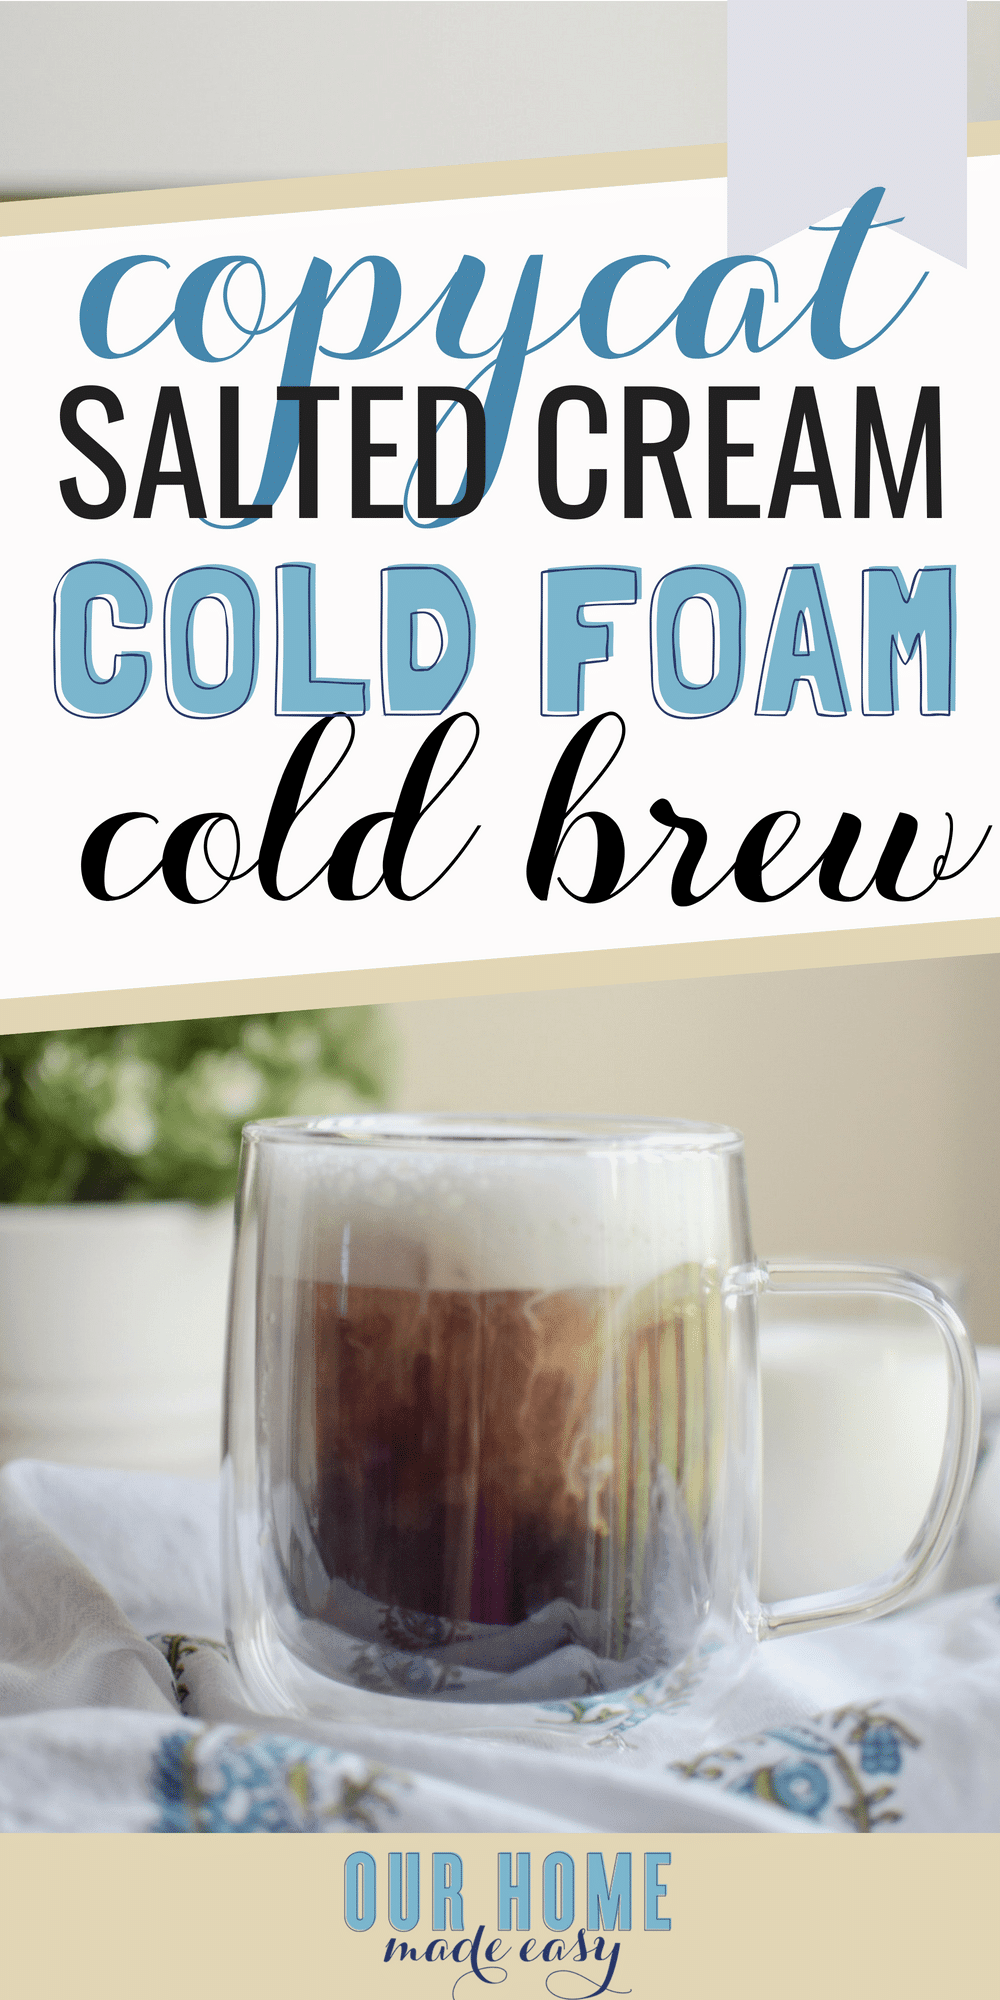 Love the newSalted Cream Cold Foam Cold Brew? Make it home really easily with this copycat recipe! Save money & pour in all the cold foam you want! #starbucks #coffee #coldbrew #caffeine #recipe